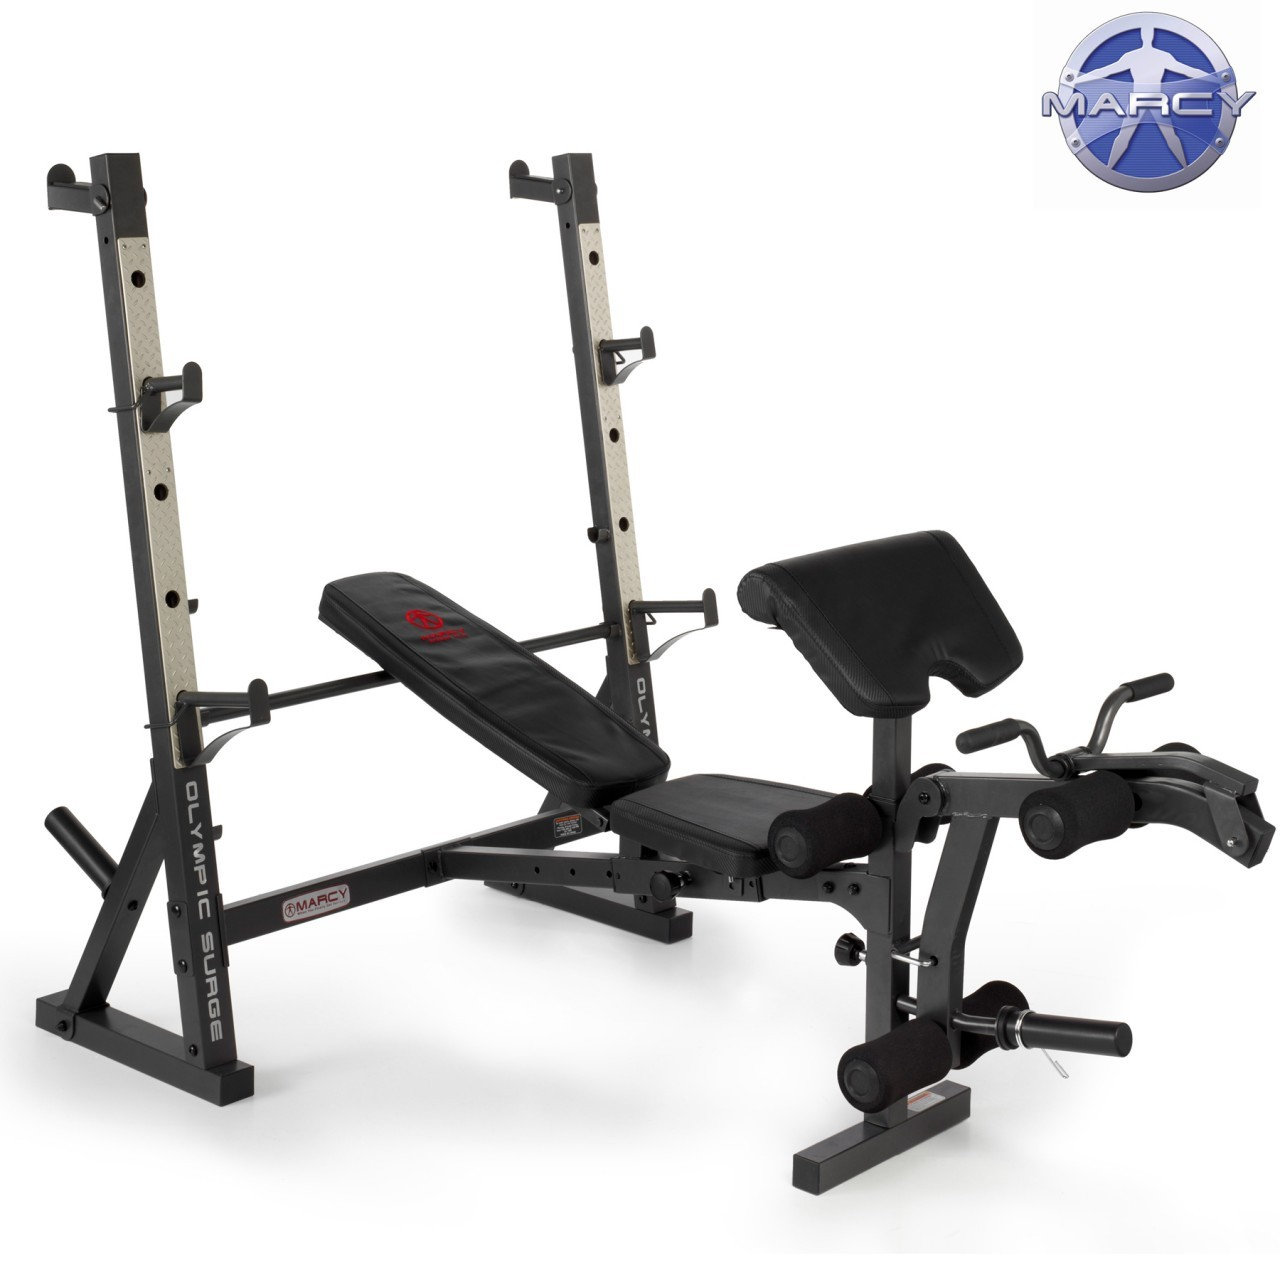 Marcy Diamond MD 857 User Reviews, Weight Bench Reviews,Best Weight Bench Reviews